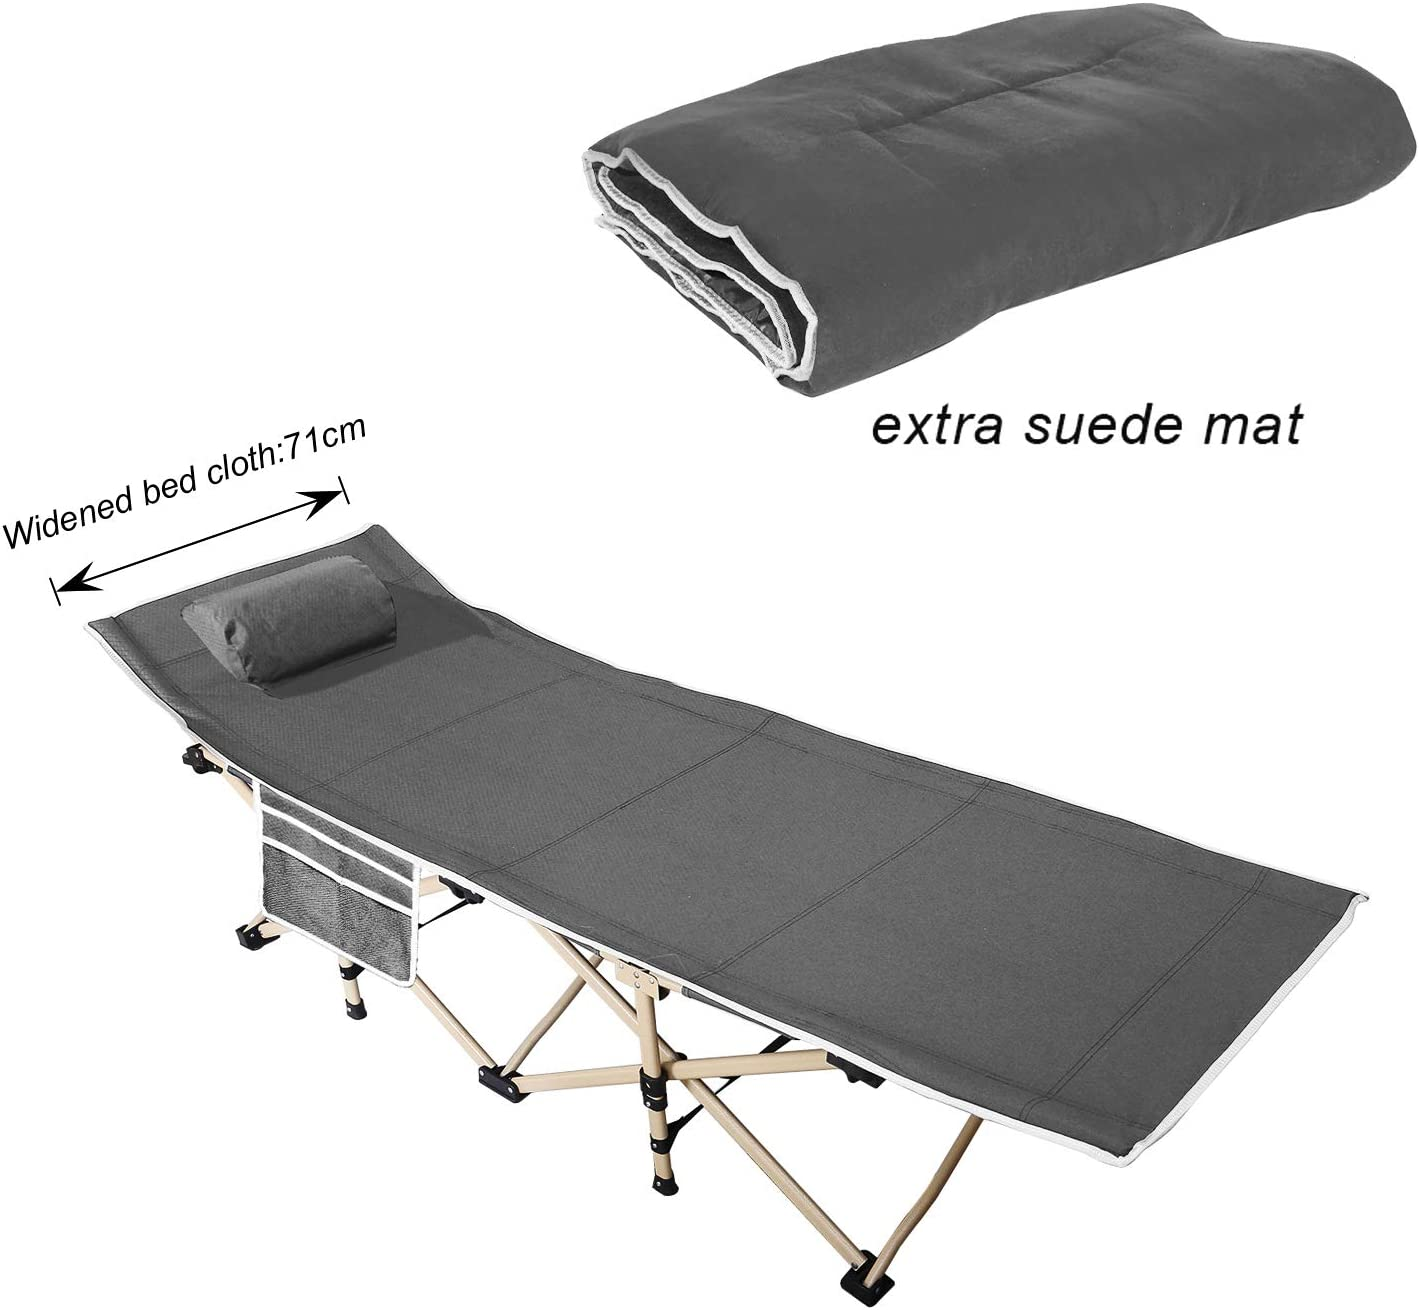 - SogesHome 71 Cm Wider Folding Camping Bed, Single Camping Bed For